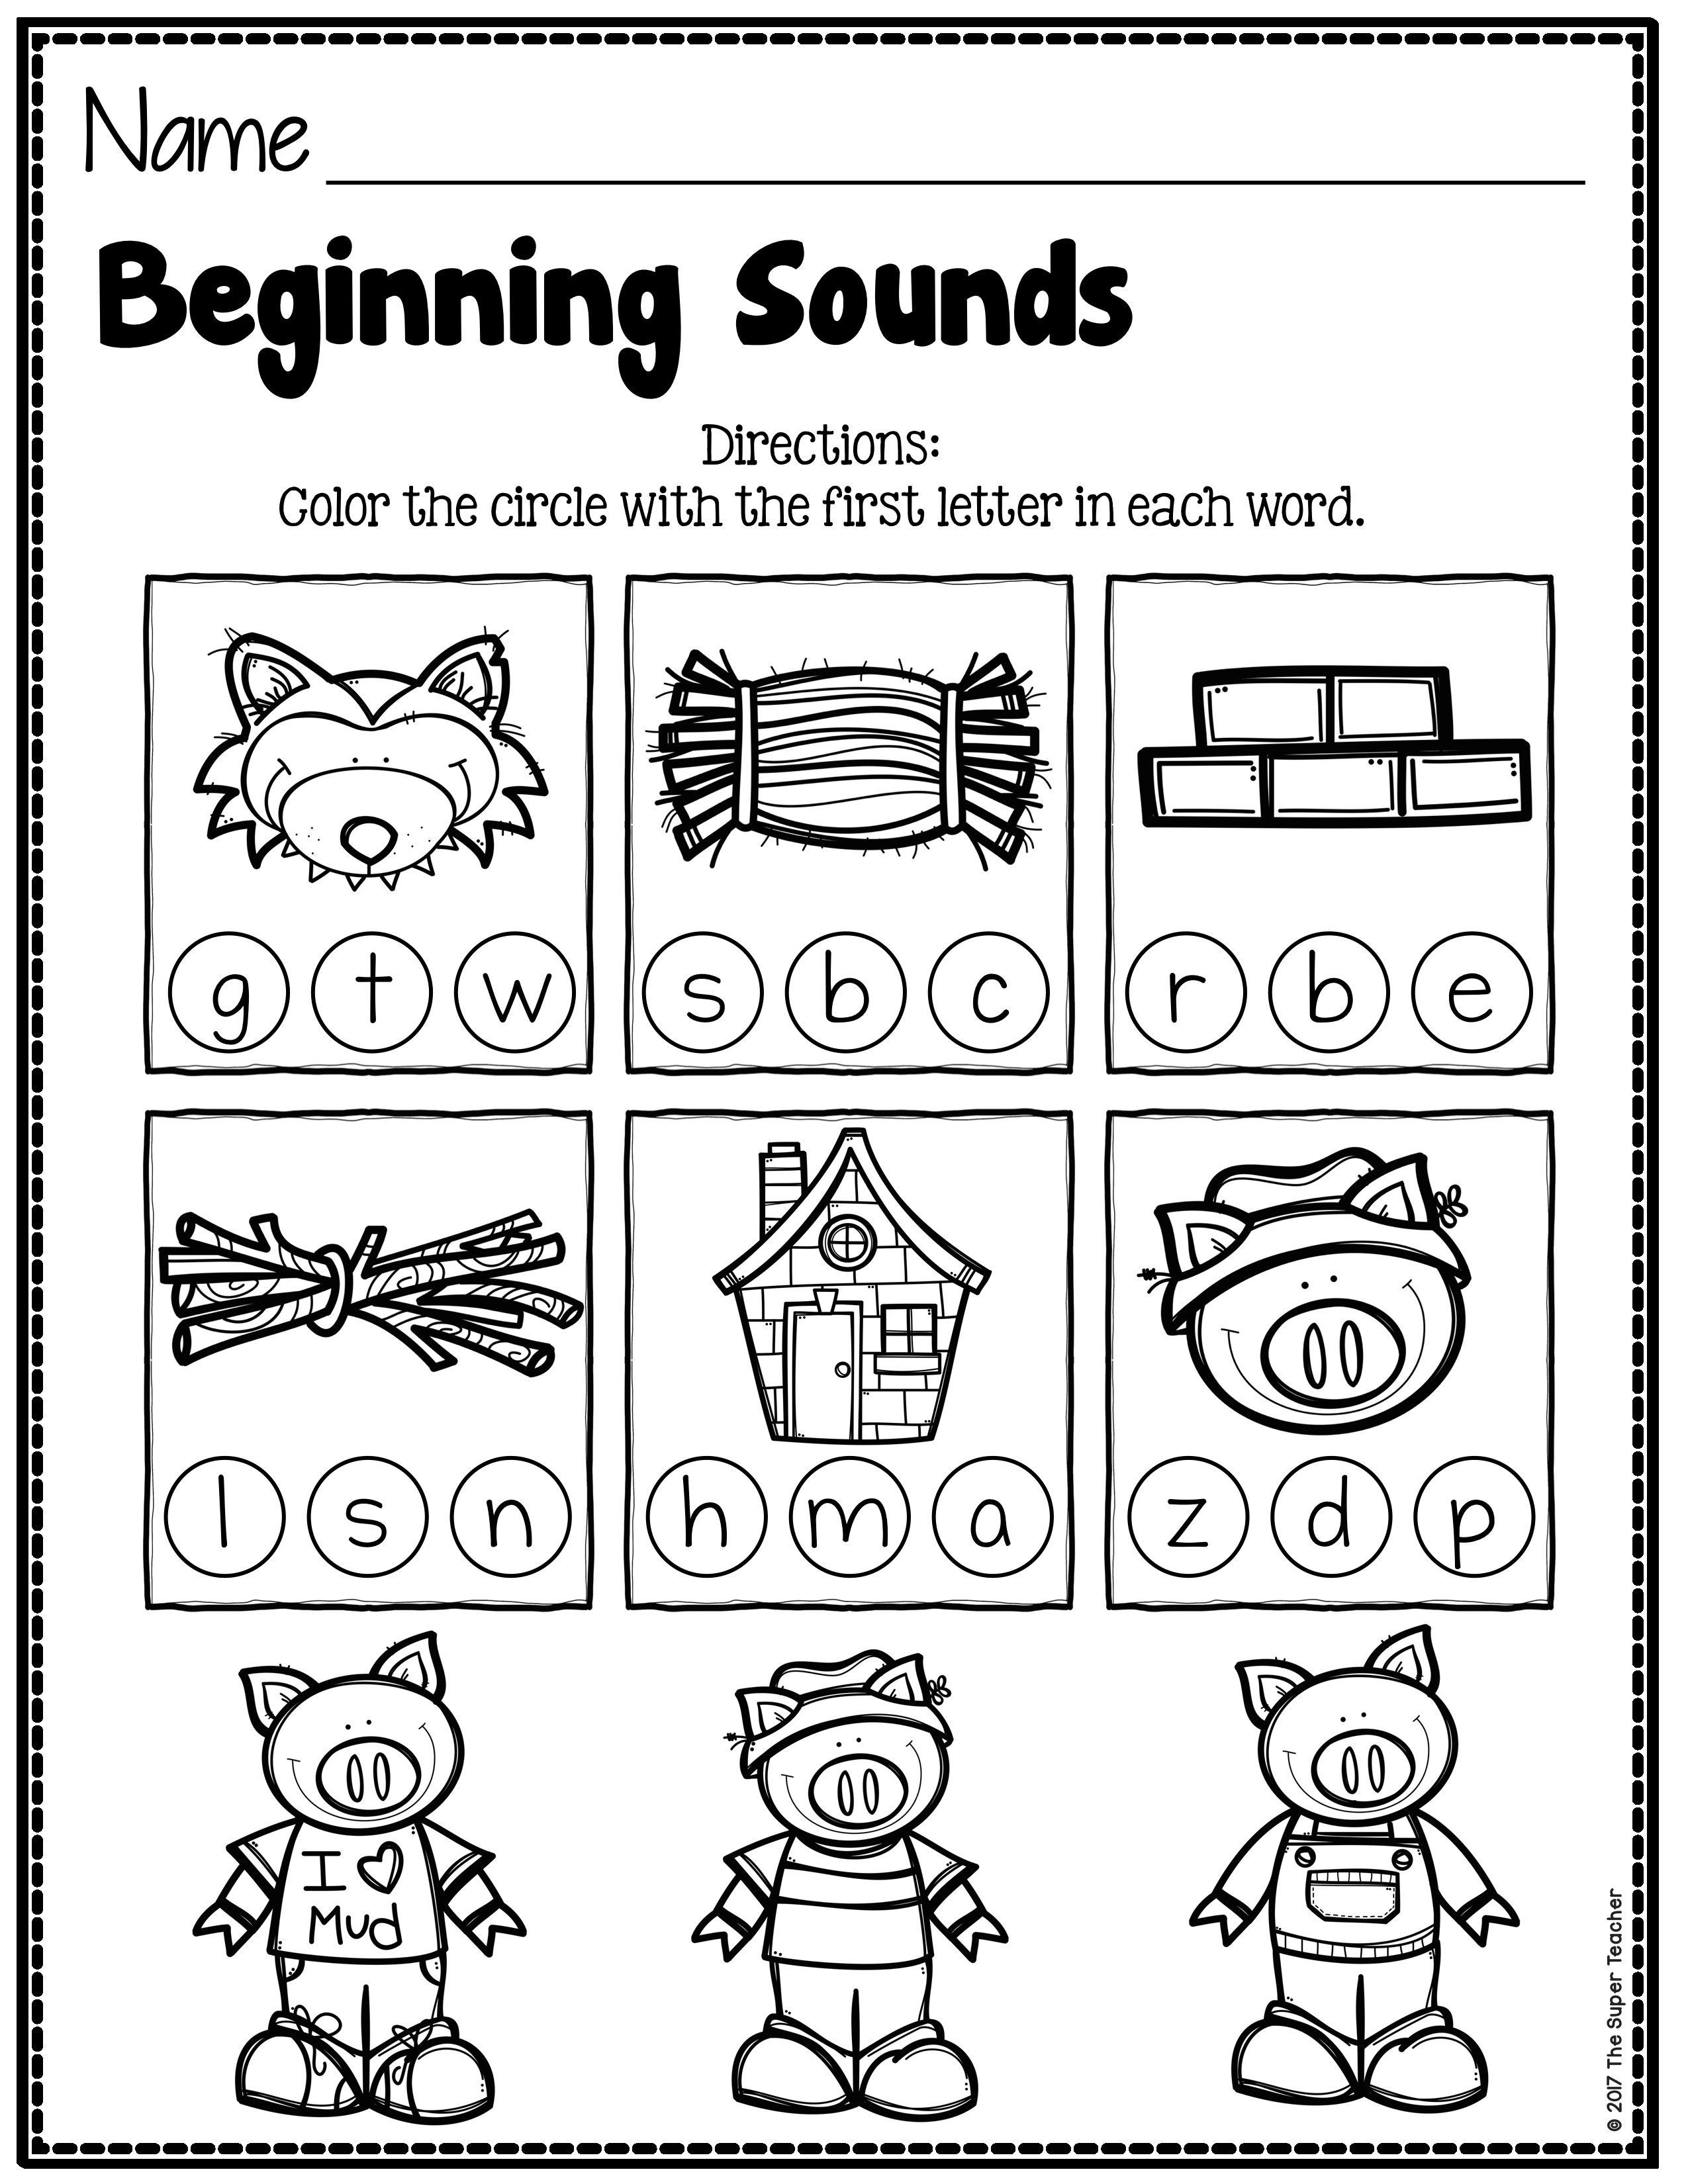 Image Result For Little Red Riding Hood Worksheets For